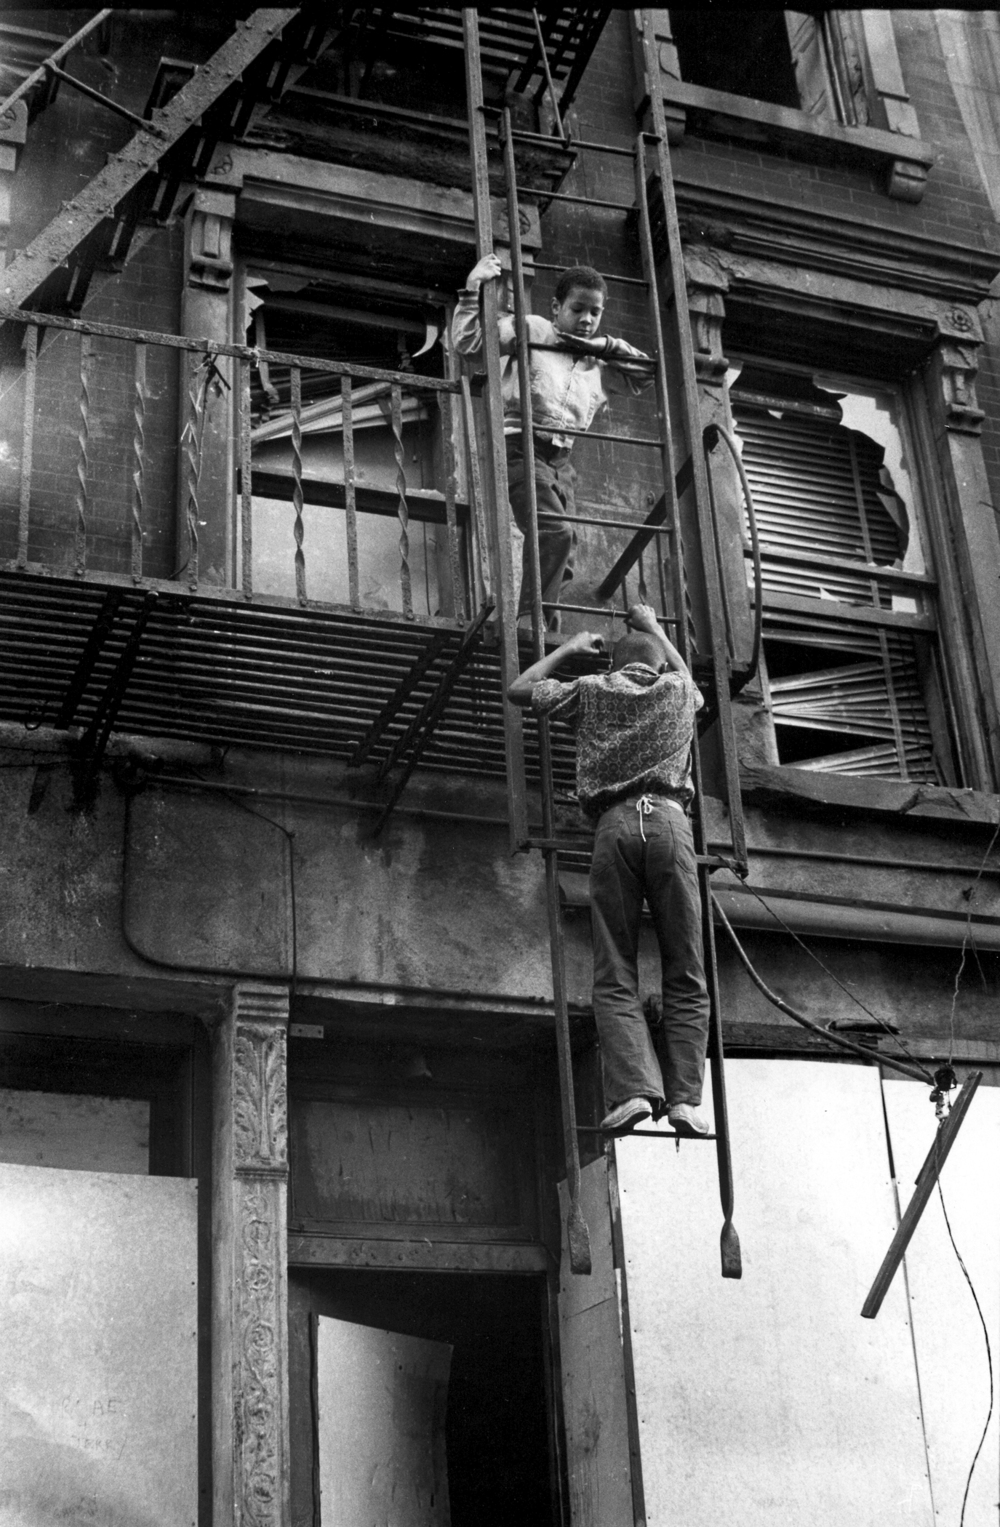 harlem kids on fire escape.jpg